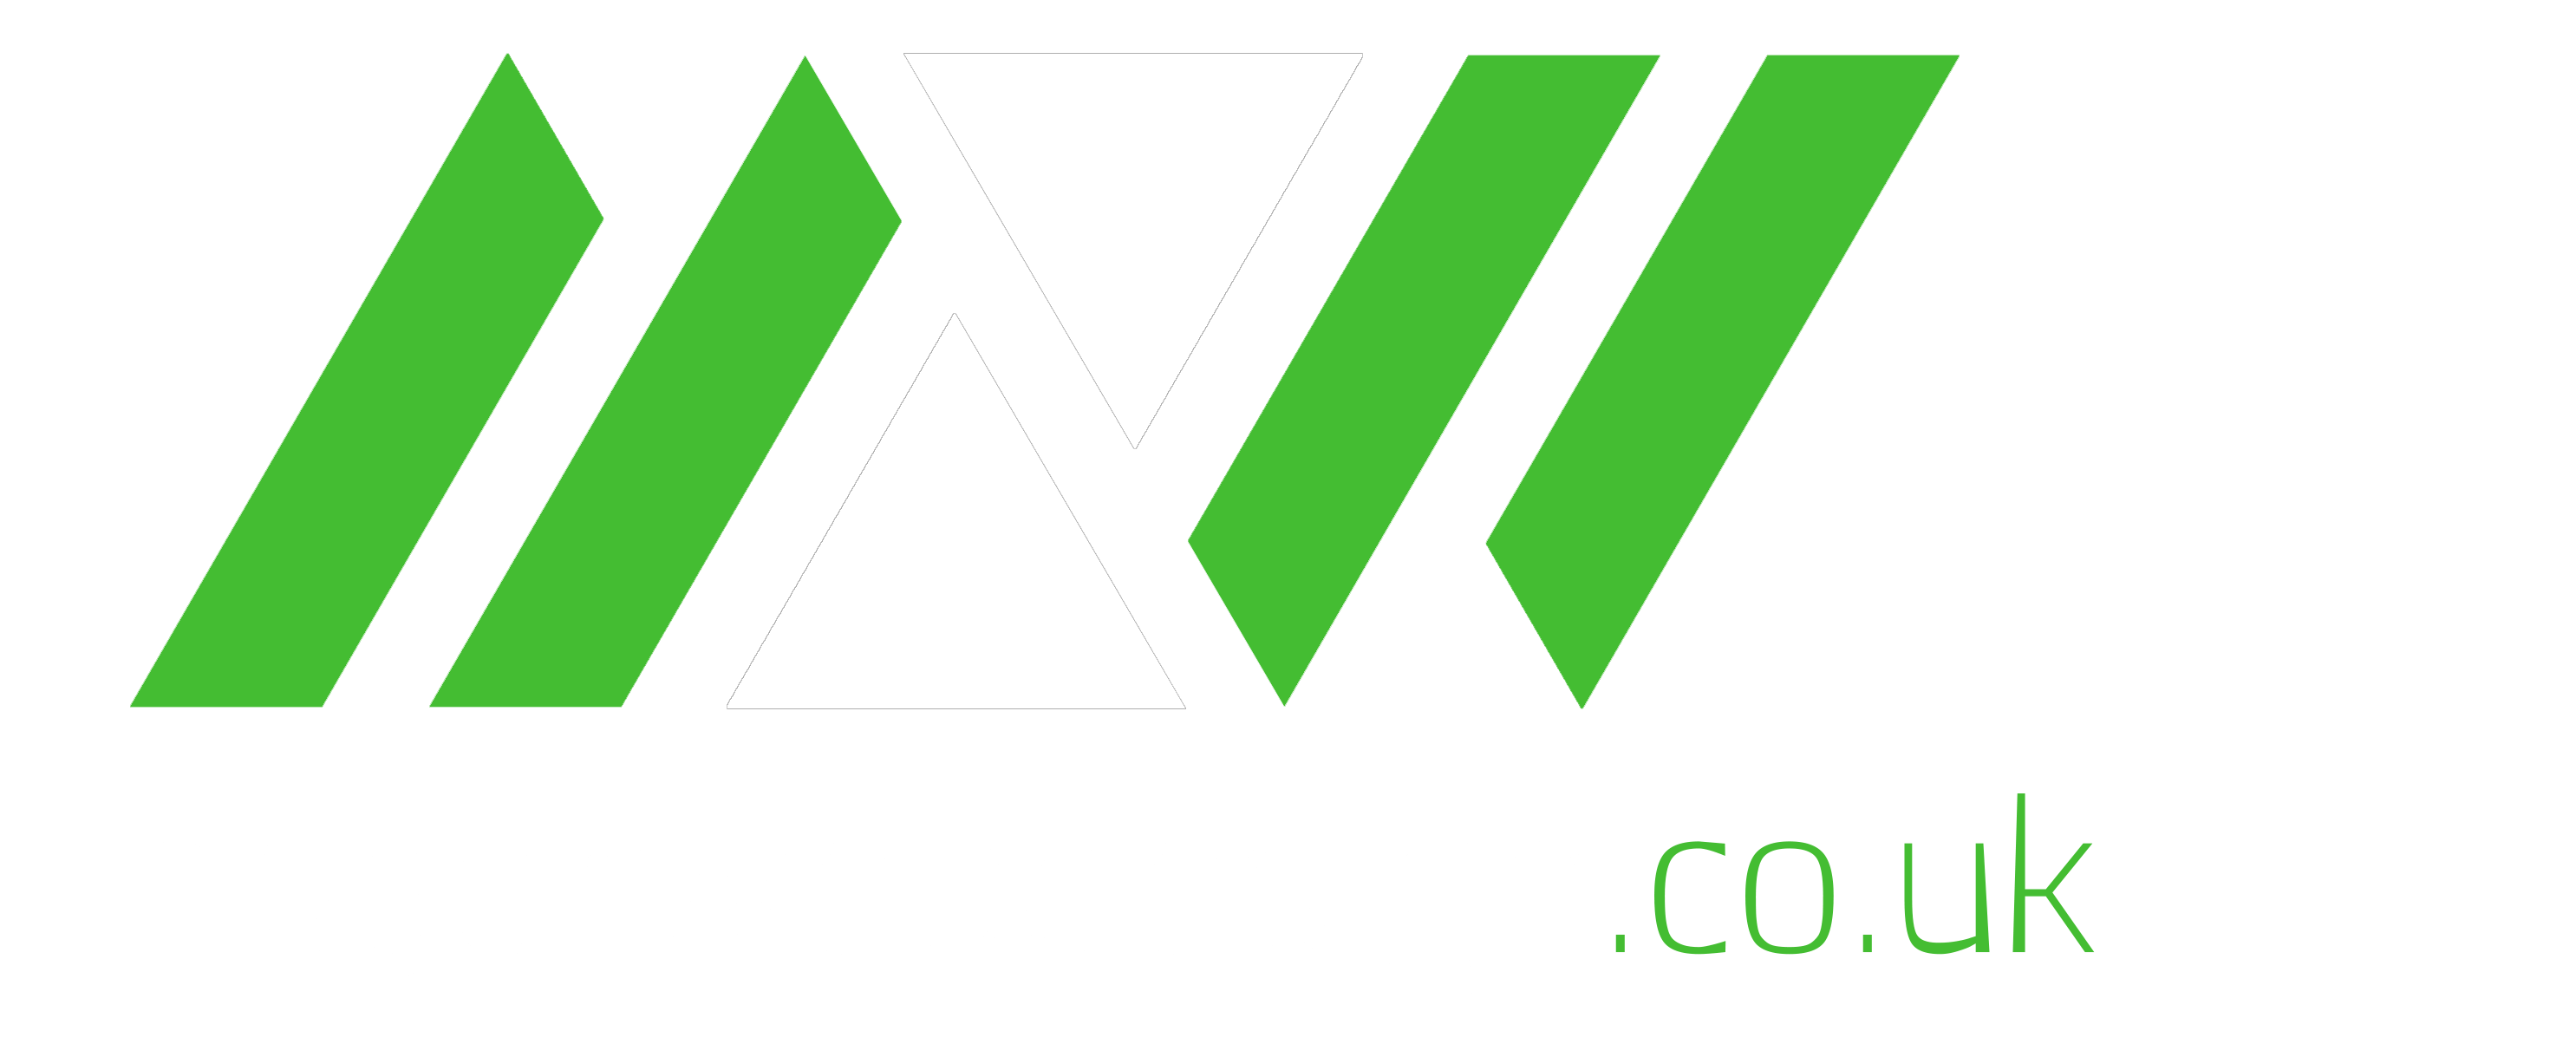 major-web-design-logo-1-Major Web Design Wales Llantwit Major Barry Cardiff Bridgend